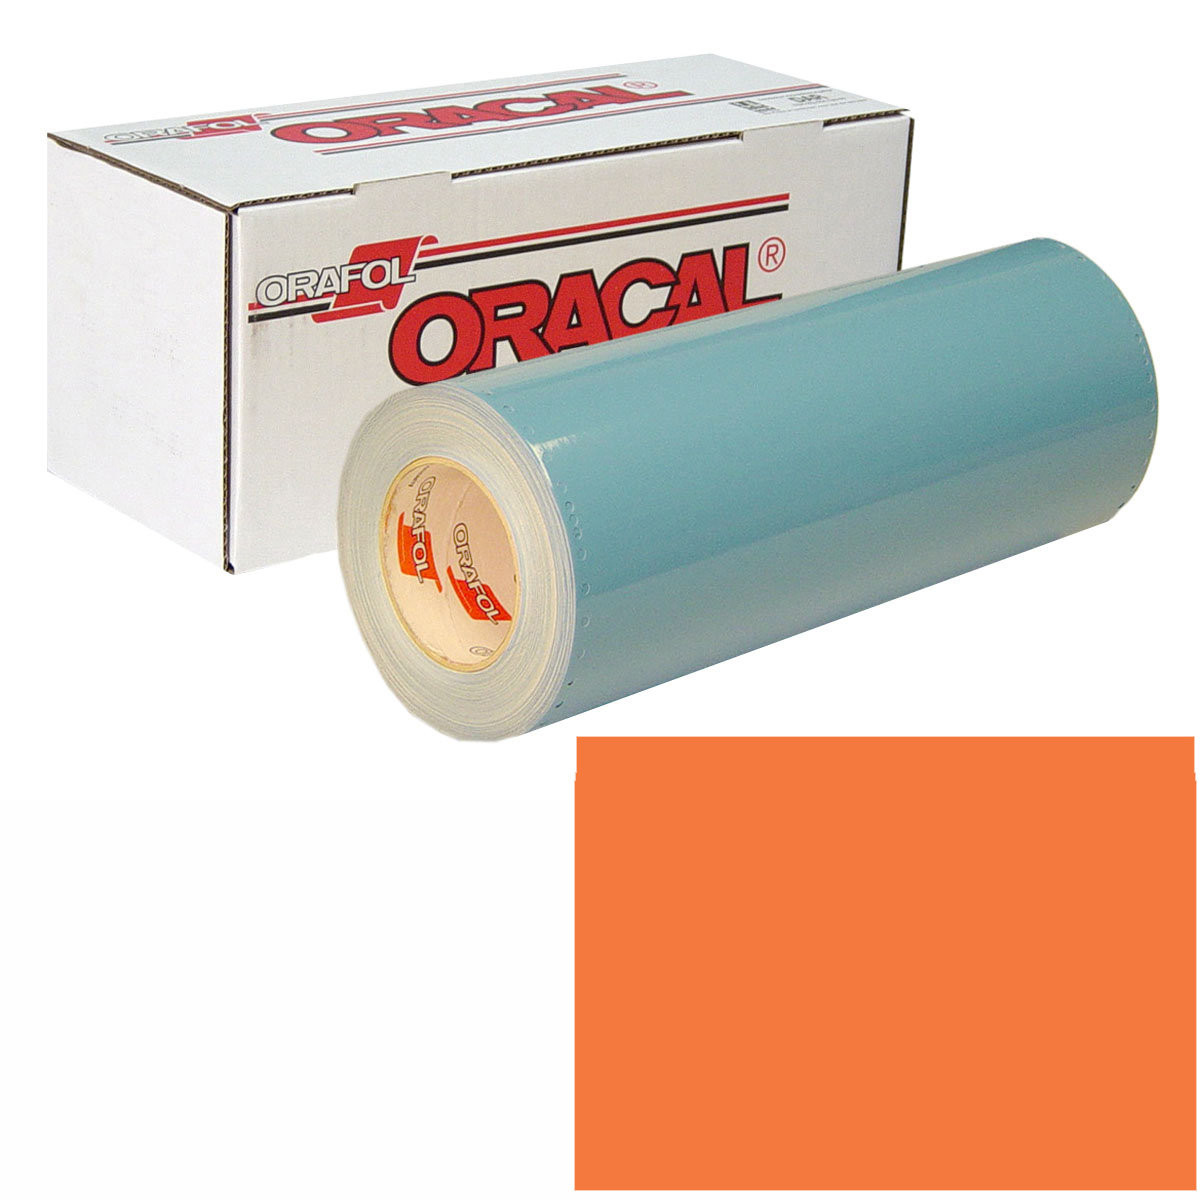 ORACAL 751 15In X 50Yd 033 Red Orange